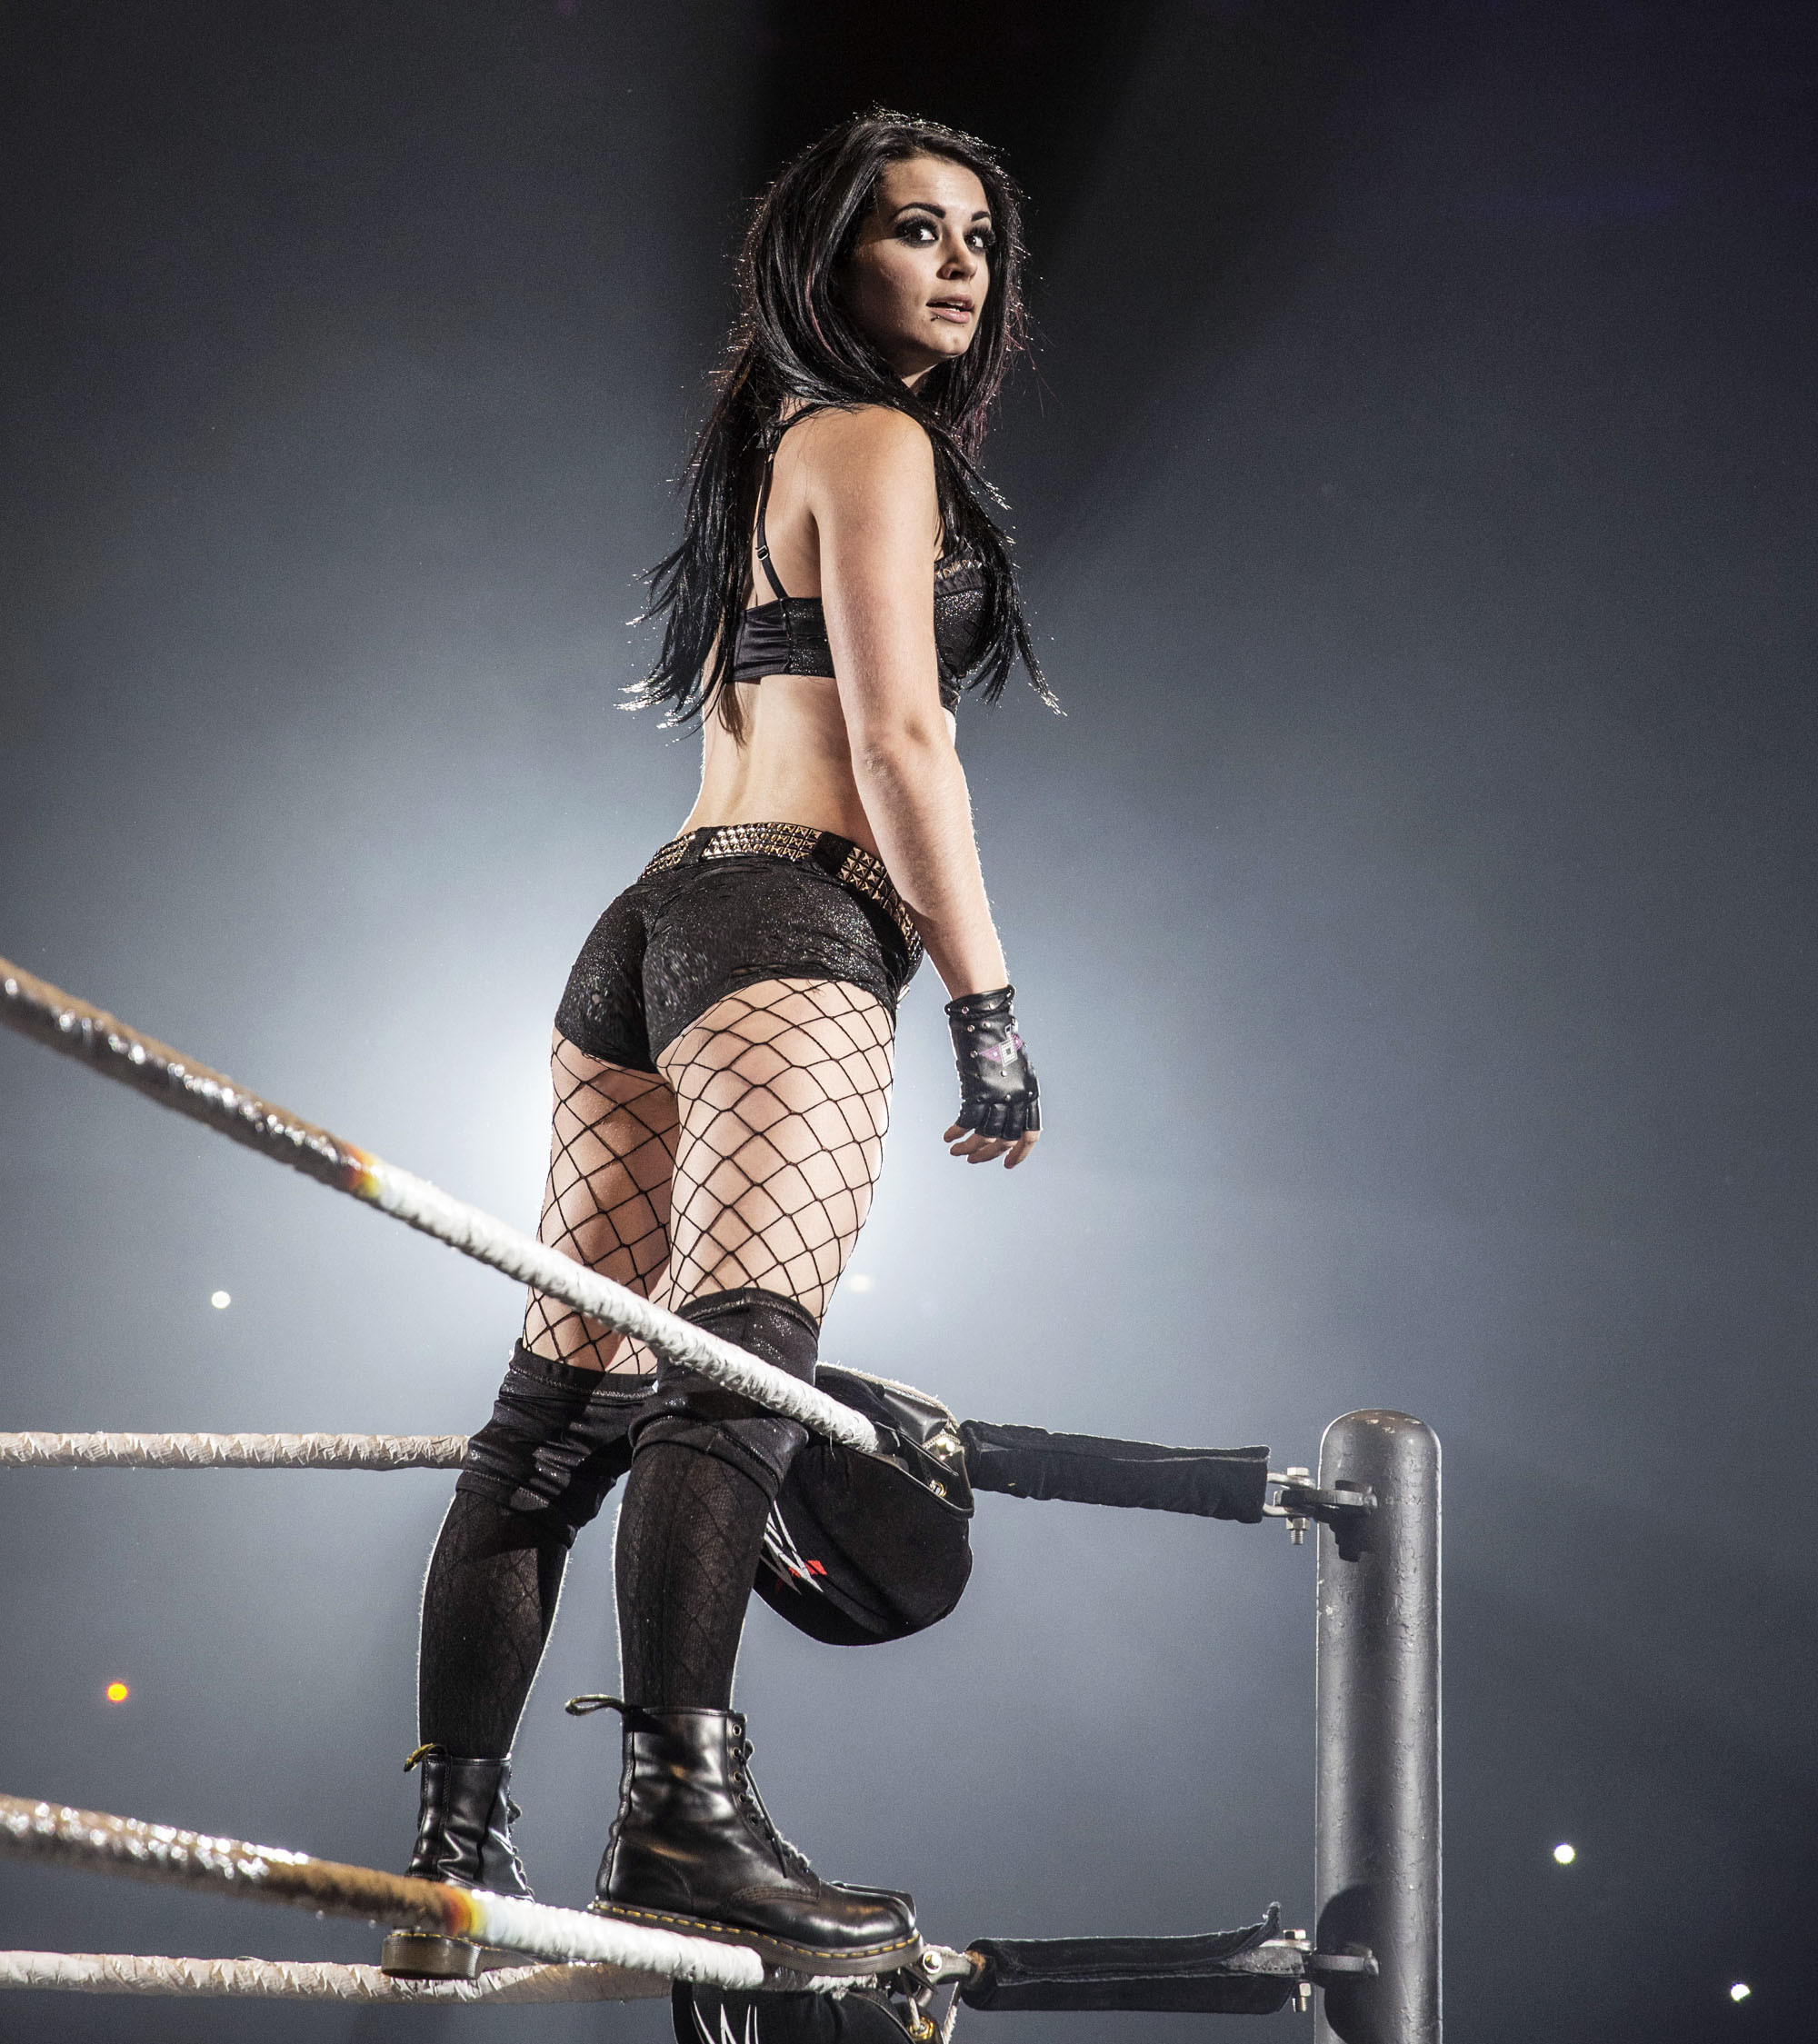 2000x2249 ... wwe image of paige butcher ...